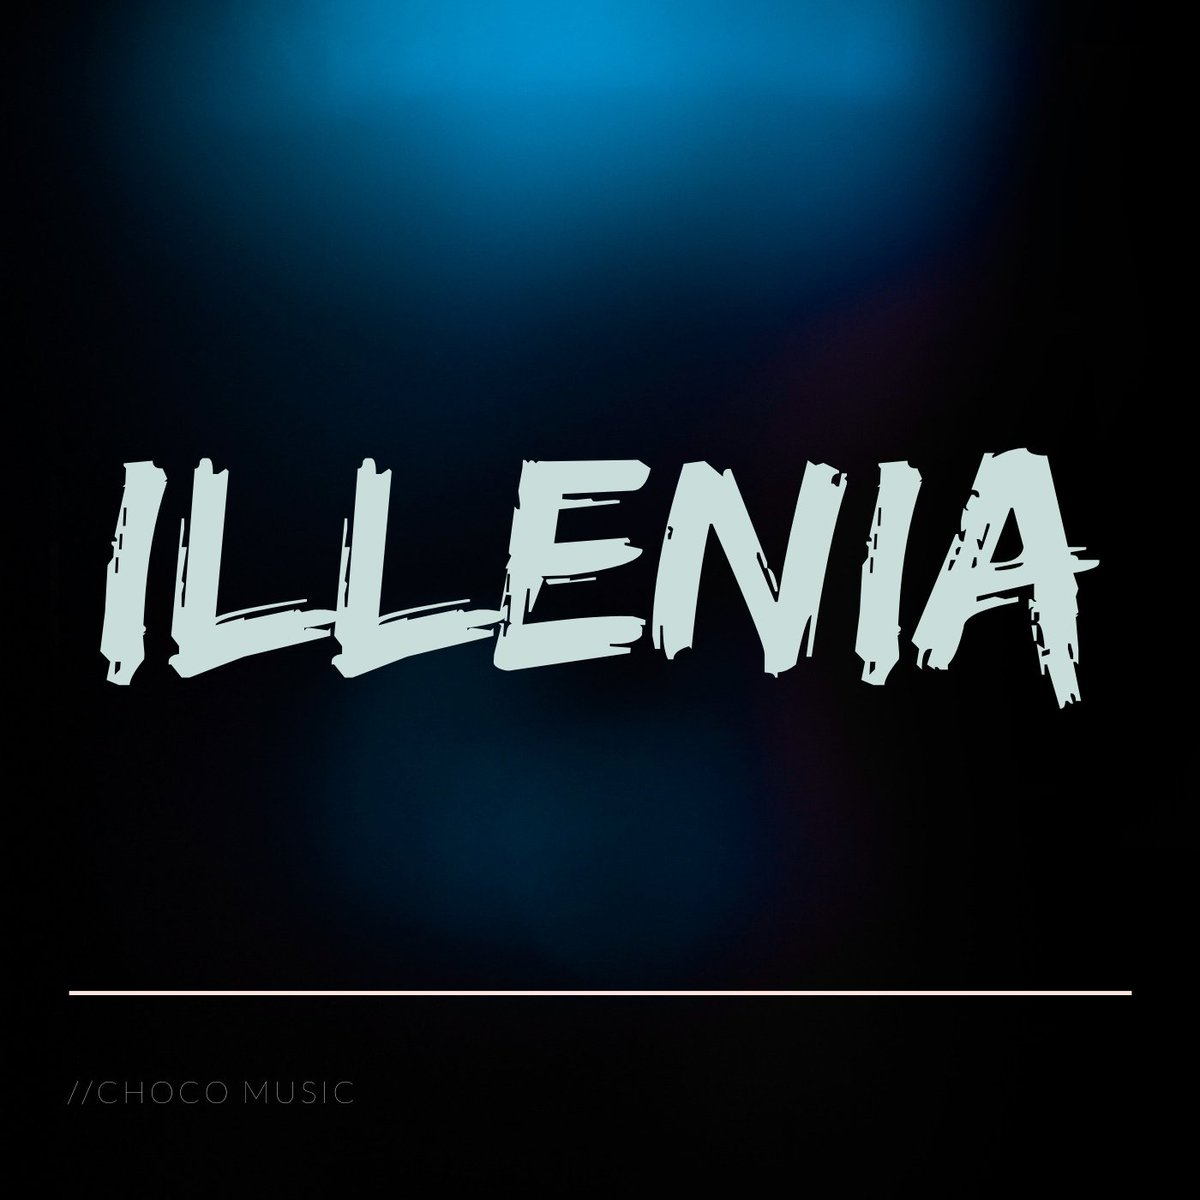 Illenia - Future Bass / Ableton Live Template by Choco Music is Out Now!  Buy Link: https://innovationsounds.com/collections/new-releases/products/illenia-future-bass-ableton-live-template…pic.twitter.com/k9lWS73Tgq